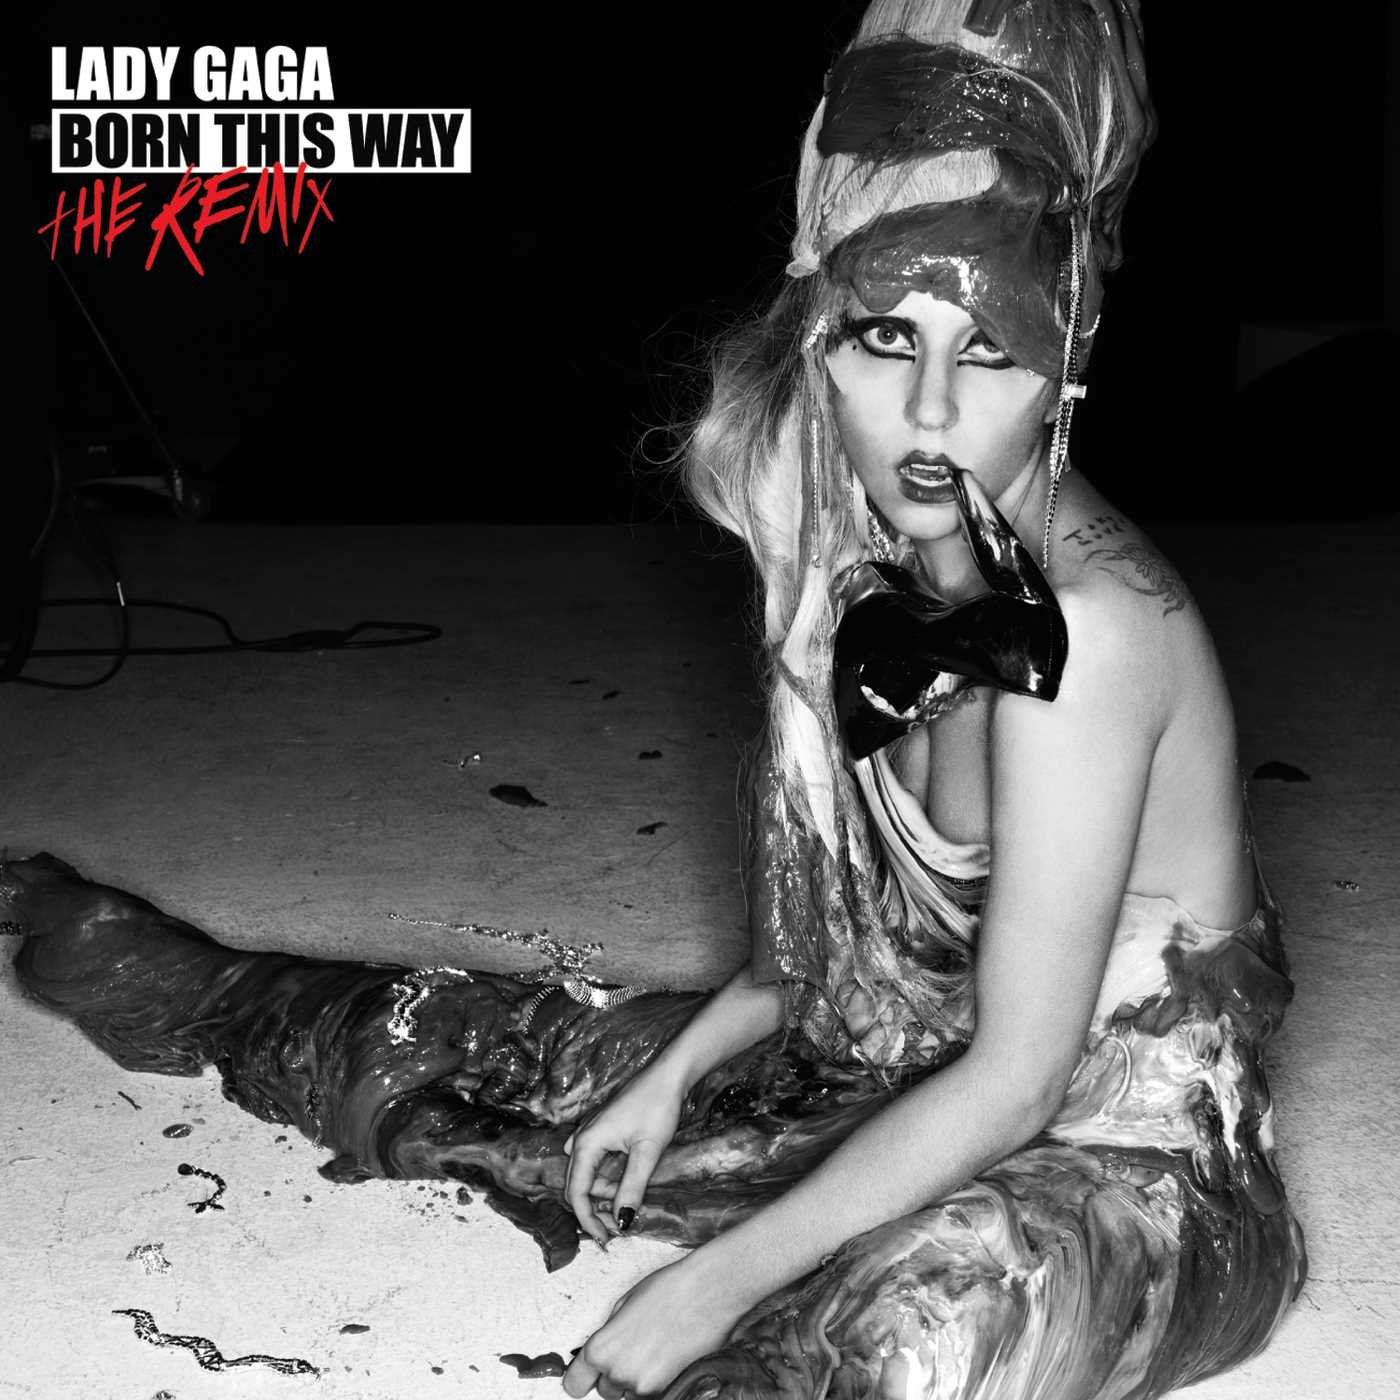 Lady Gaga, Born This Way: The Remix